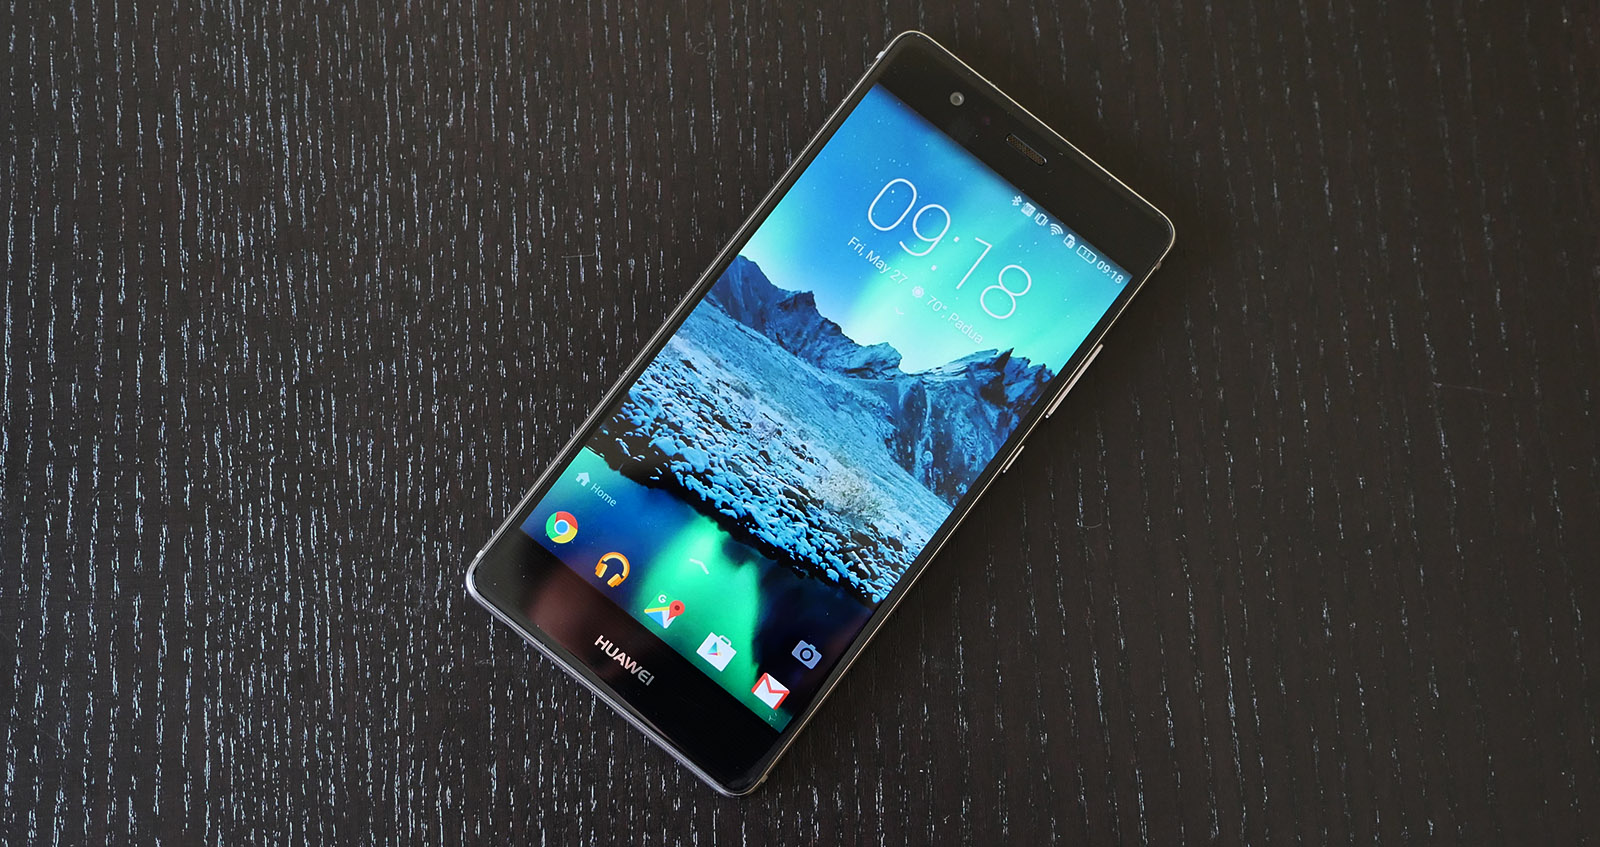 With Android Its Possible To Change Your Lock Screen